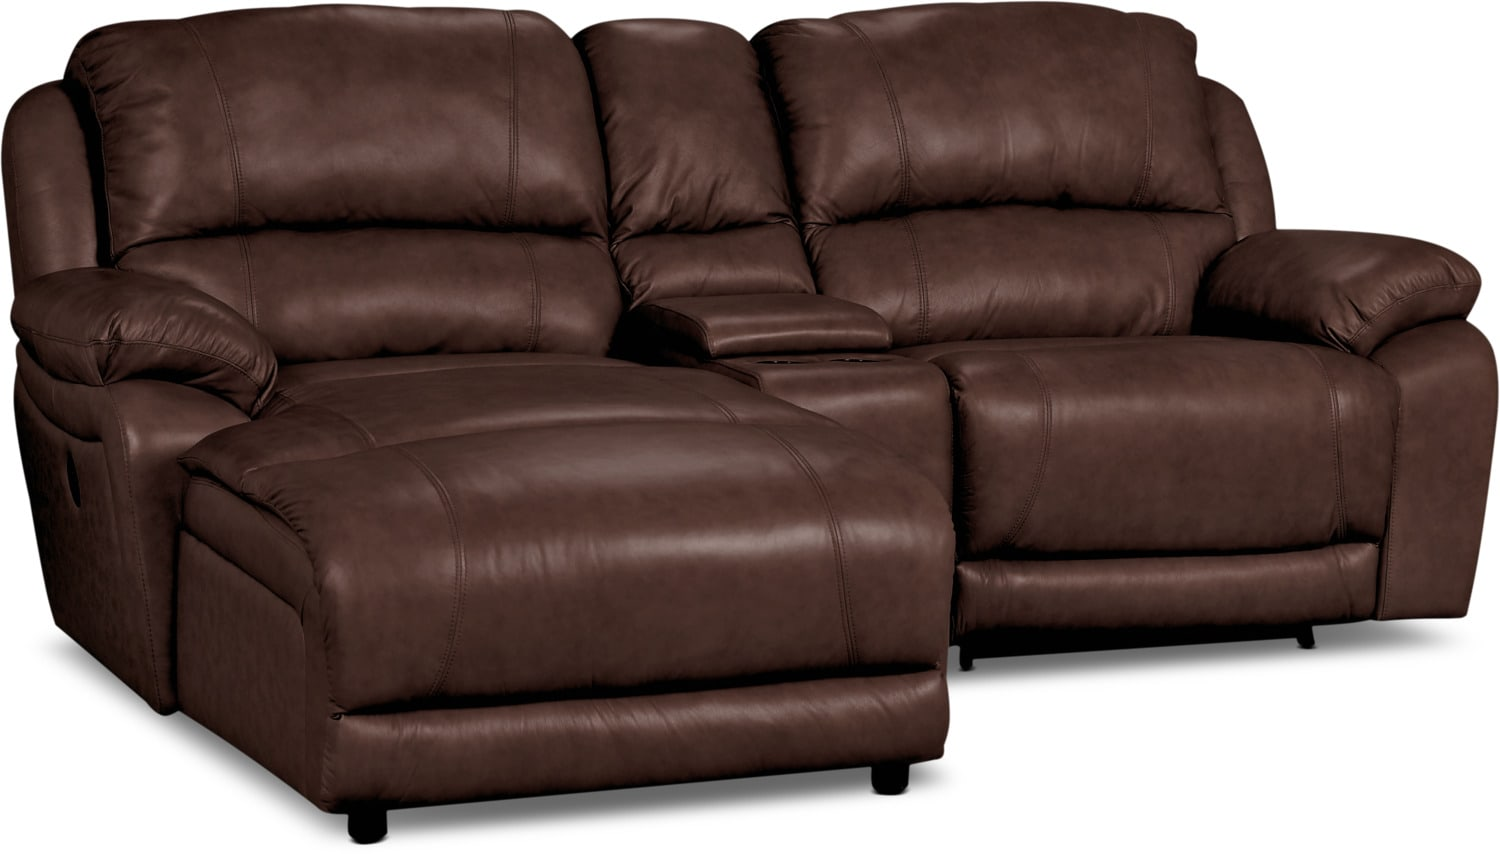 3 piece leather sectional sofa with chaise library marco genuine power